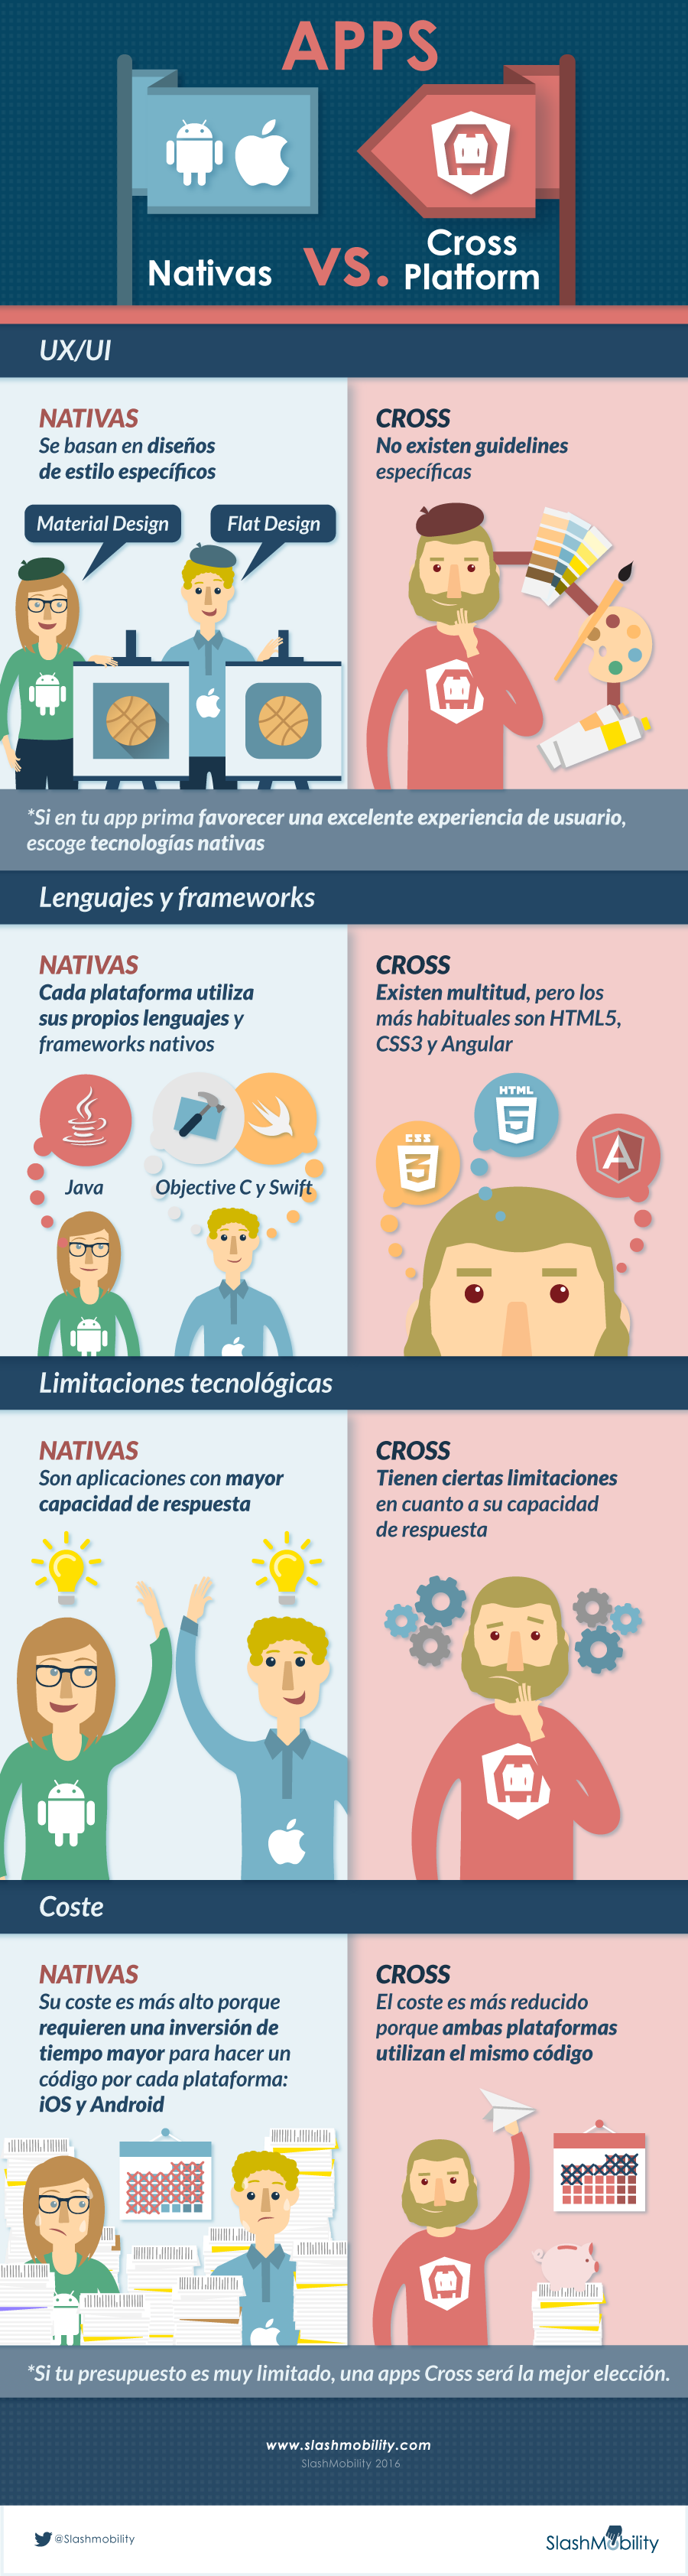 infografia-apps-nativas-apps-cross-plattform